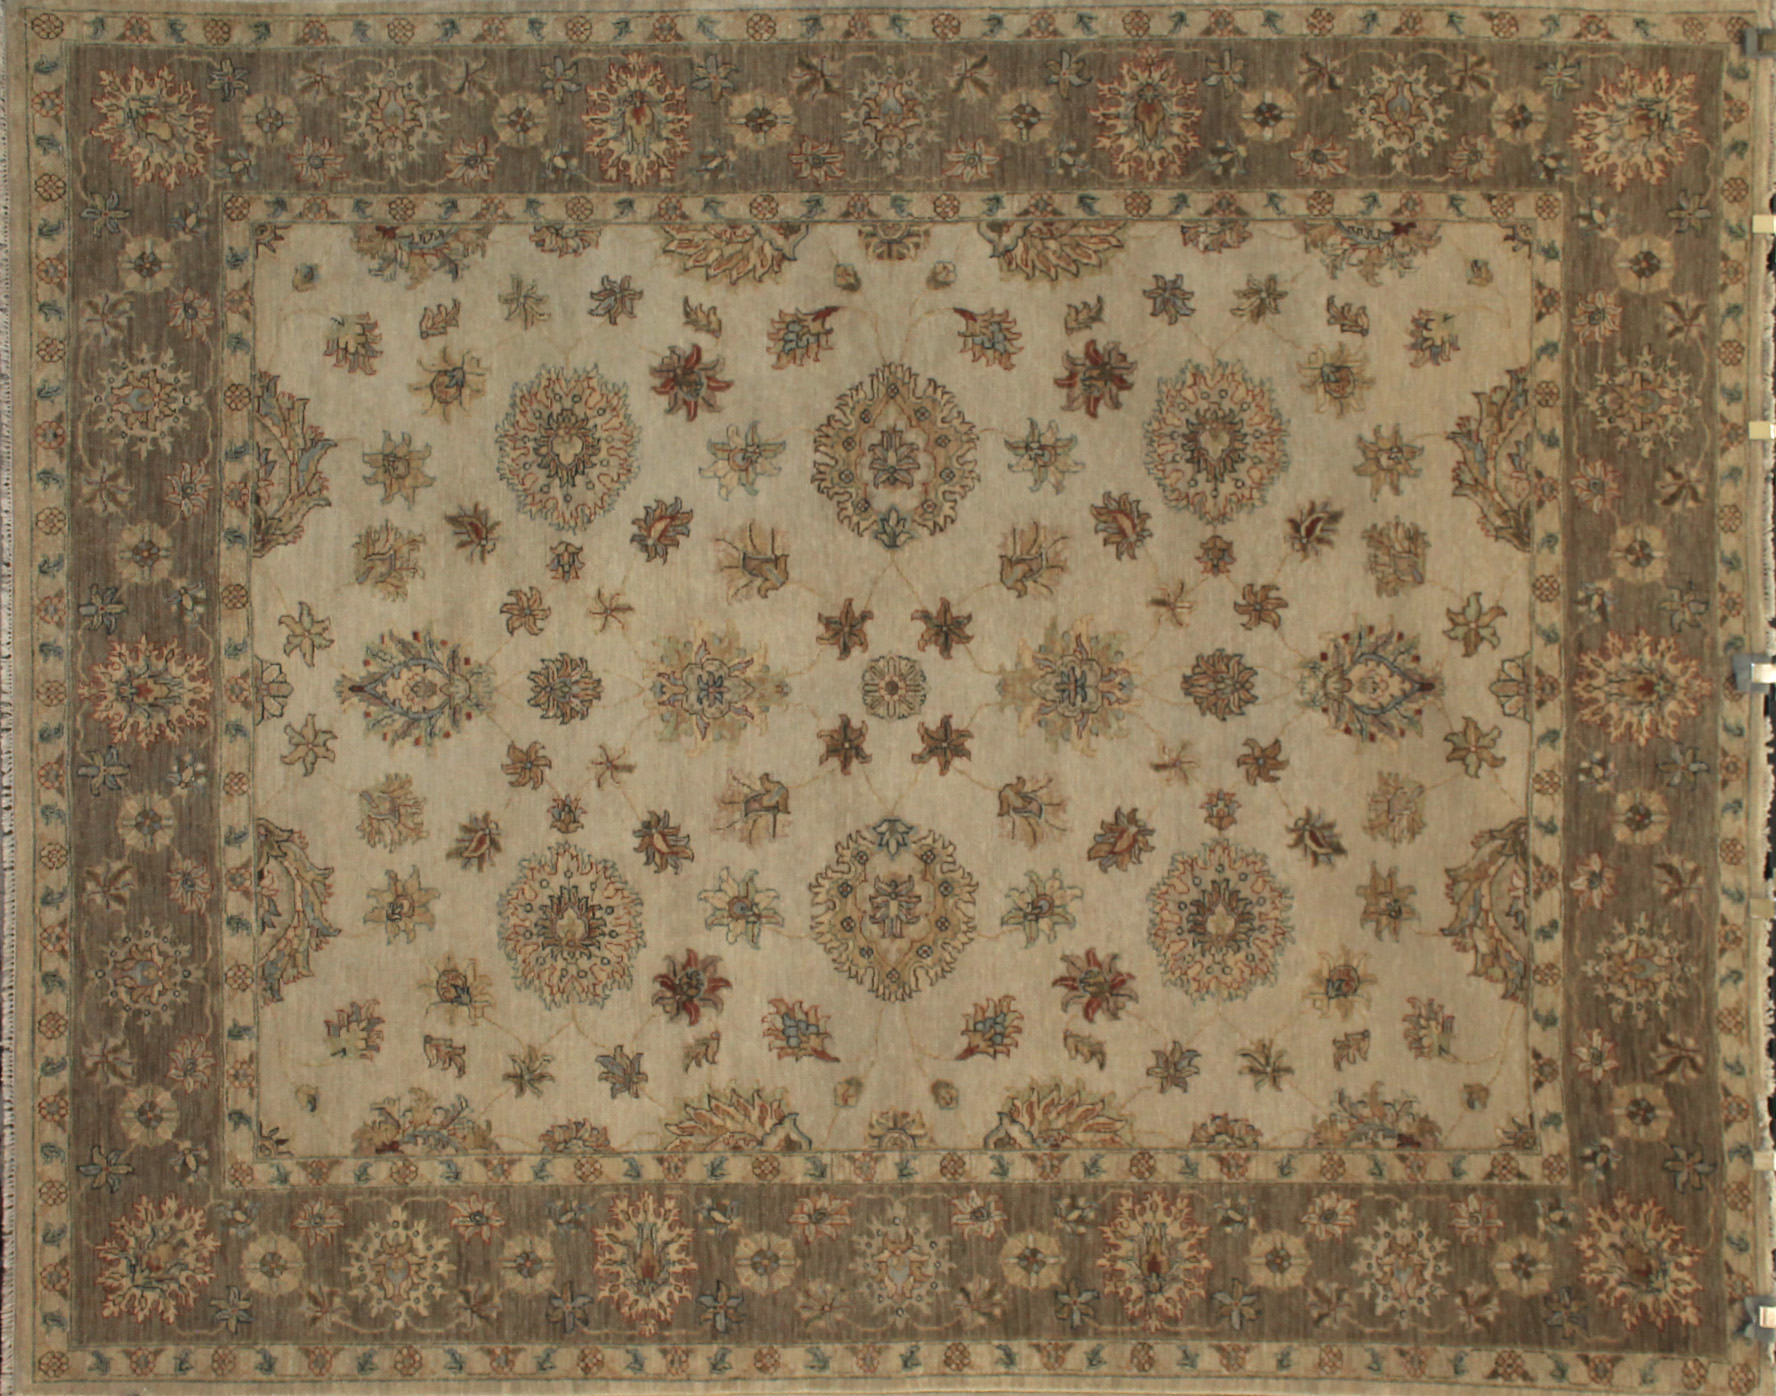 8x10 Traditional Hand Knotted Wool Area Rug - MR13865